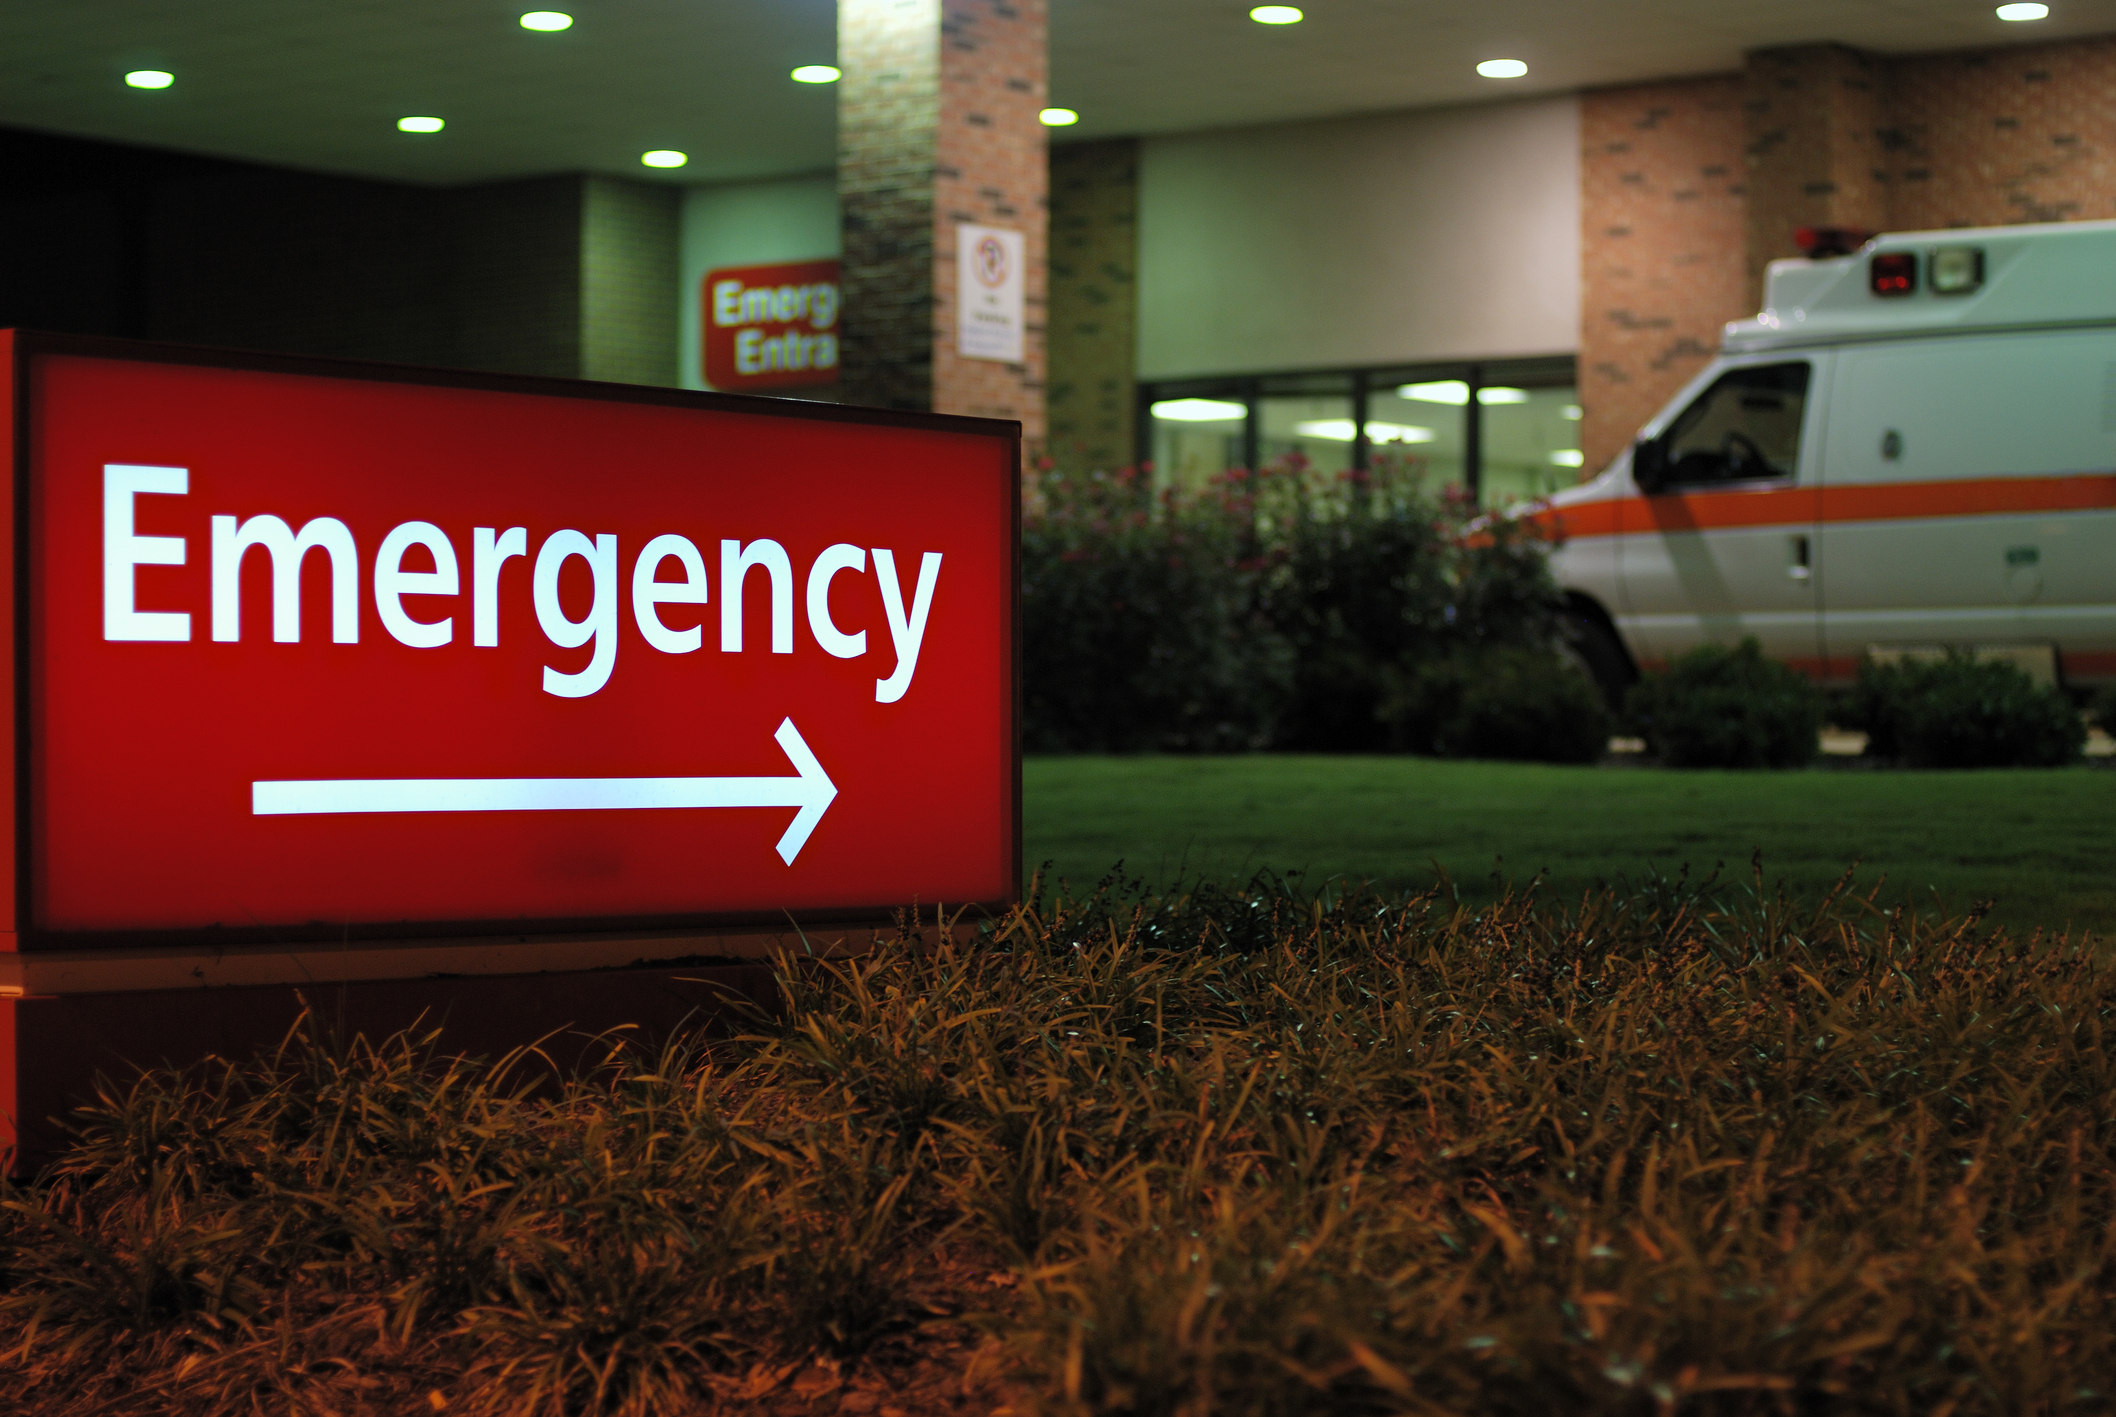 Emergency room entrance sign with ambulance